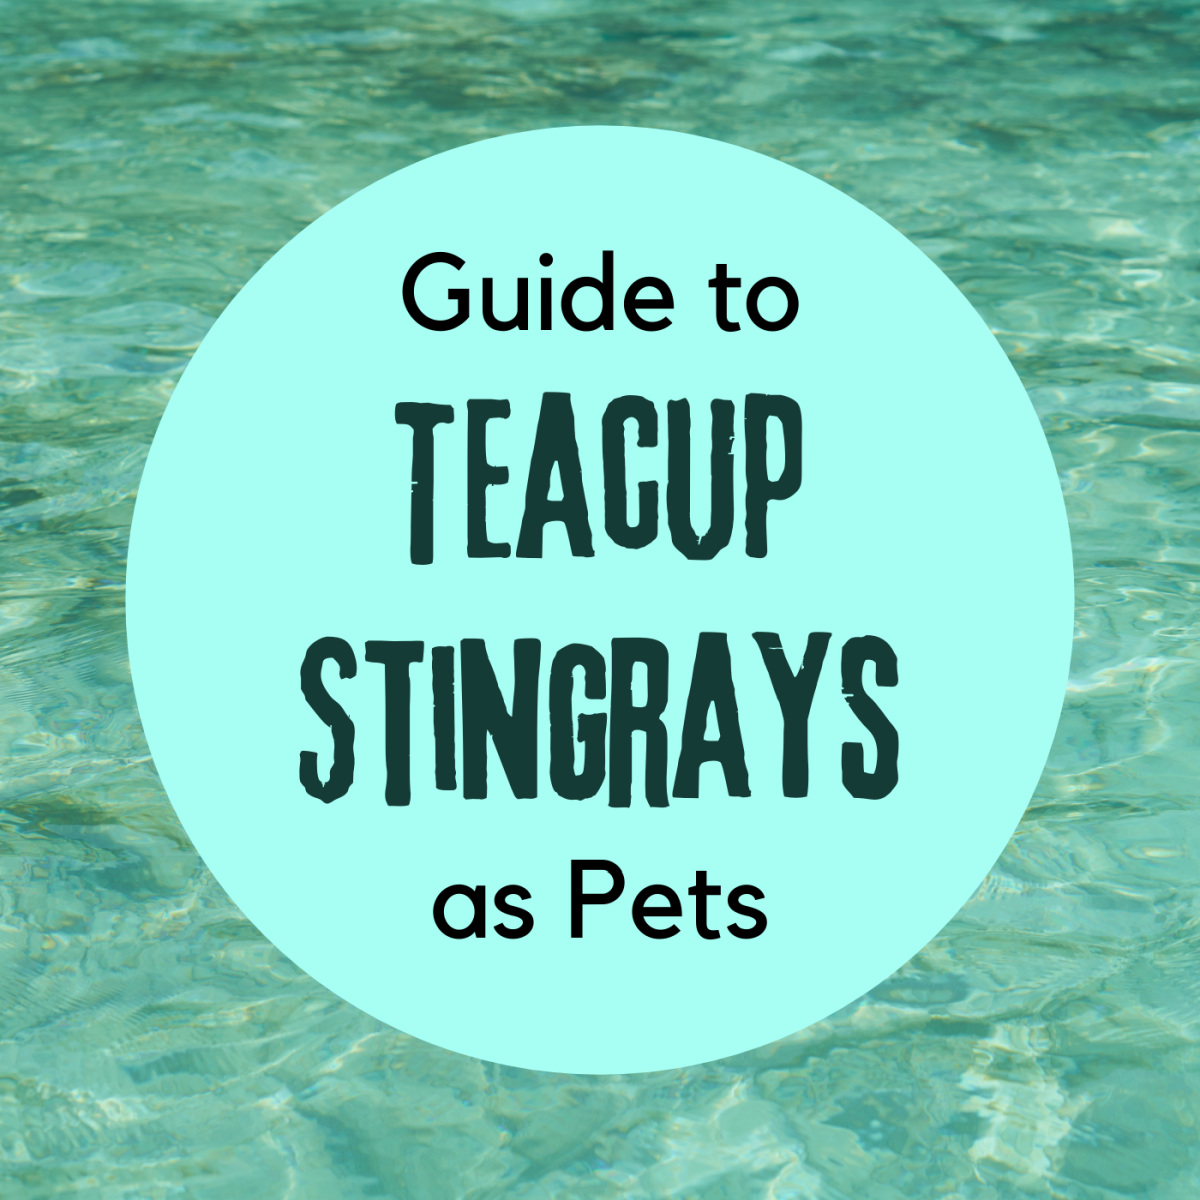 Learn about the basics of keeping teacup stingrays, from the recommended aquarium setup to the restrictions on these fish.